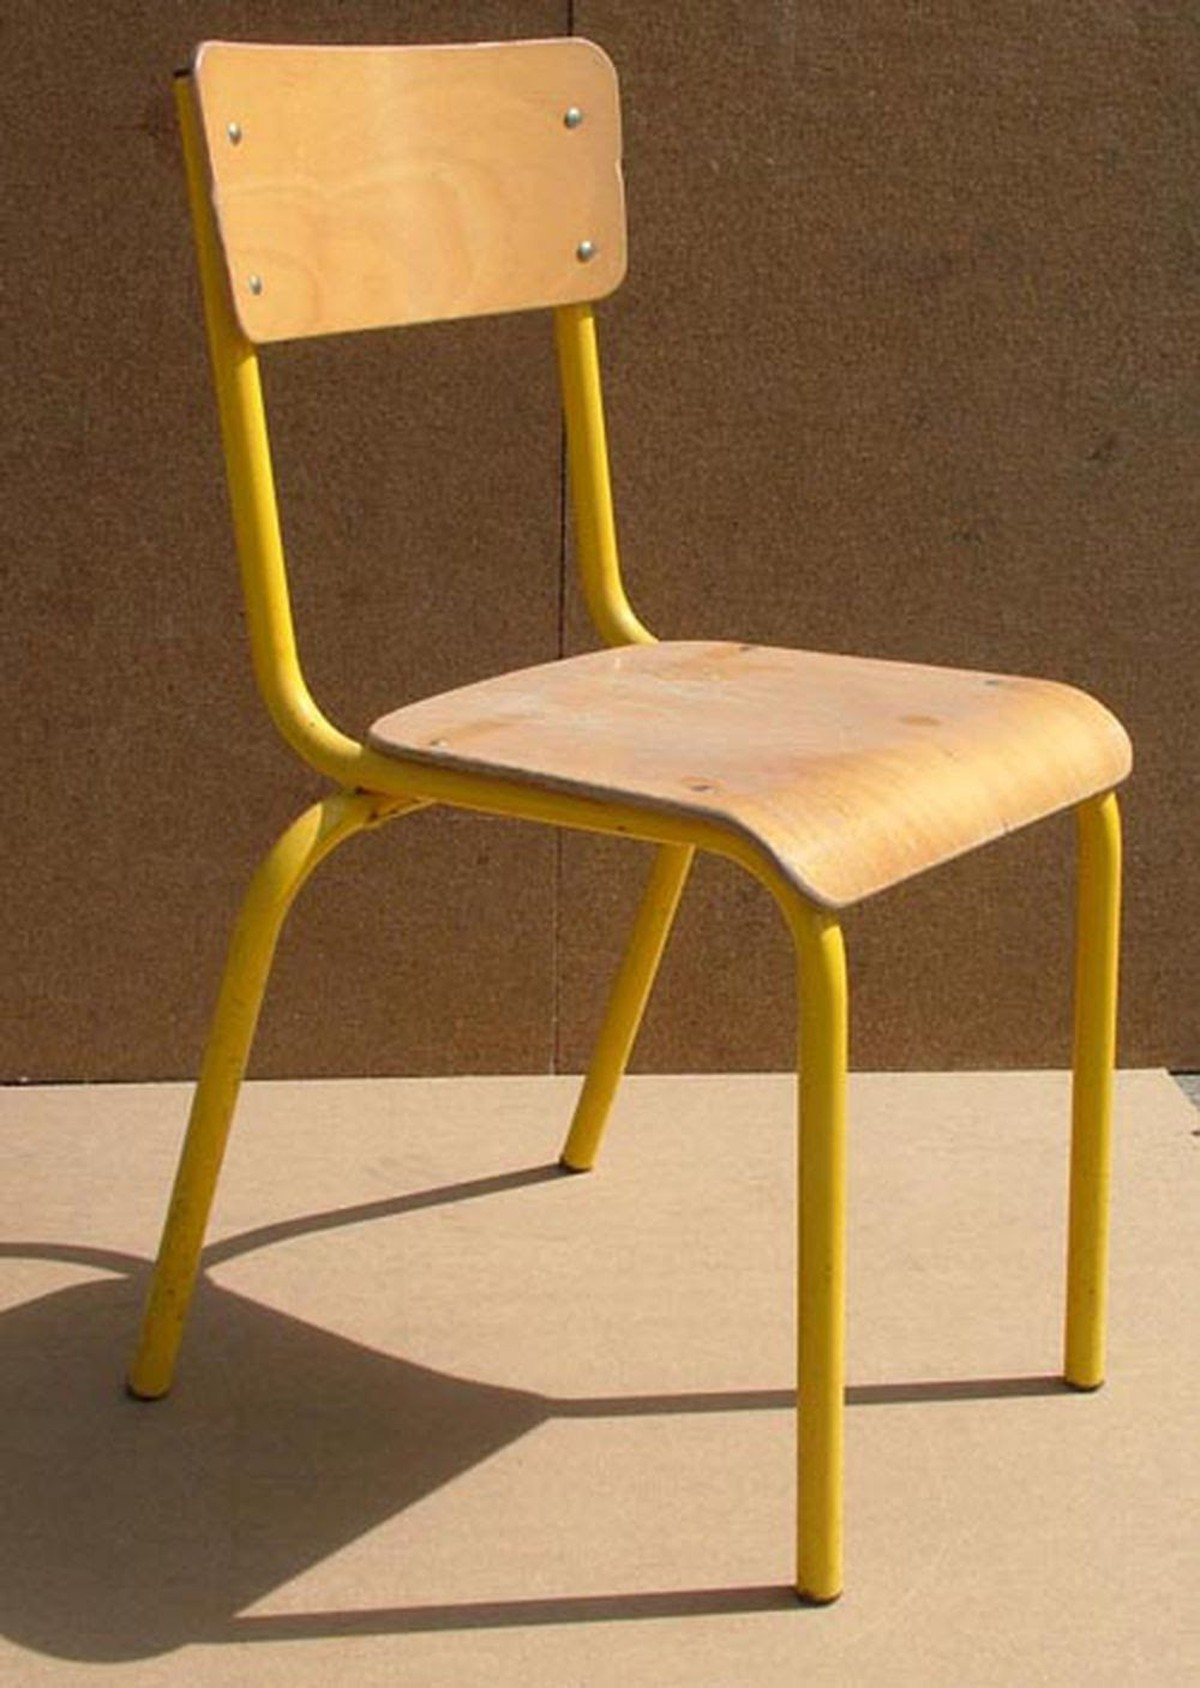 Vintage School Chairs Secondhand Vintage And Reclaimed 60 S Vintage 10x Vintage